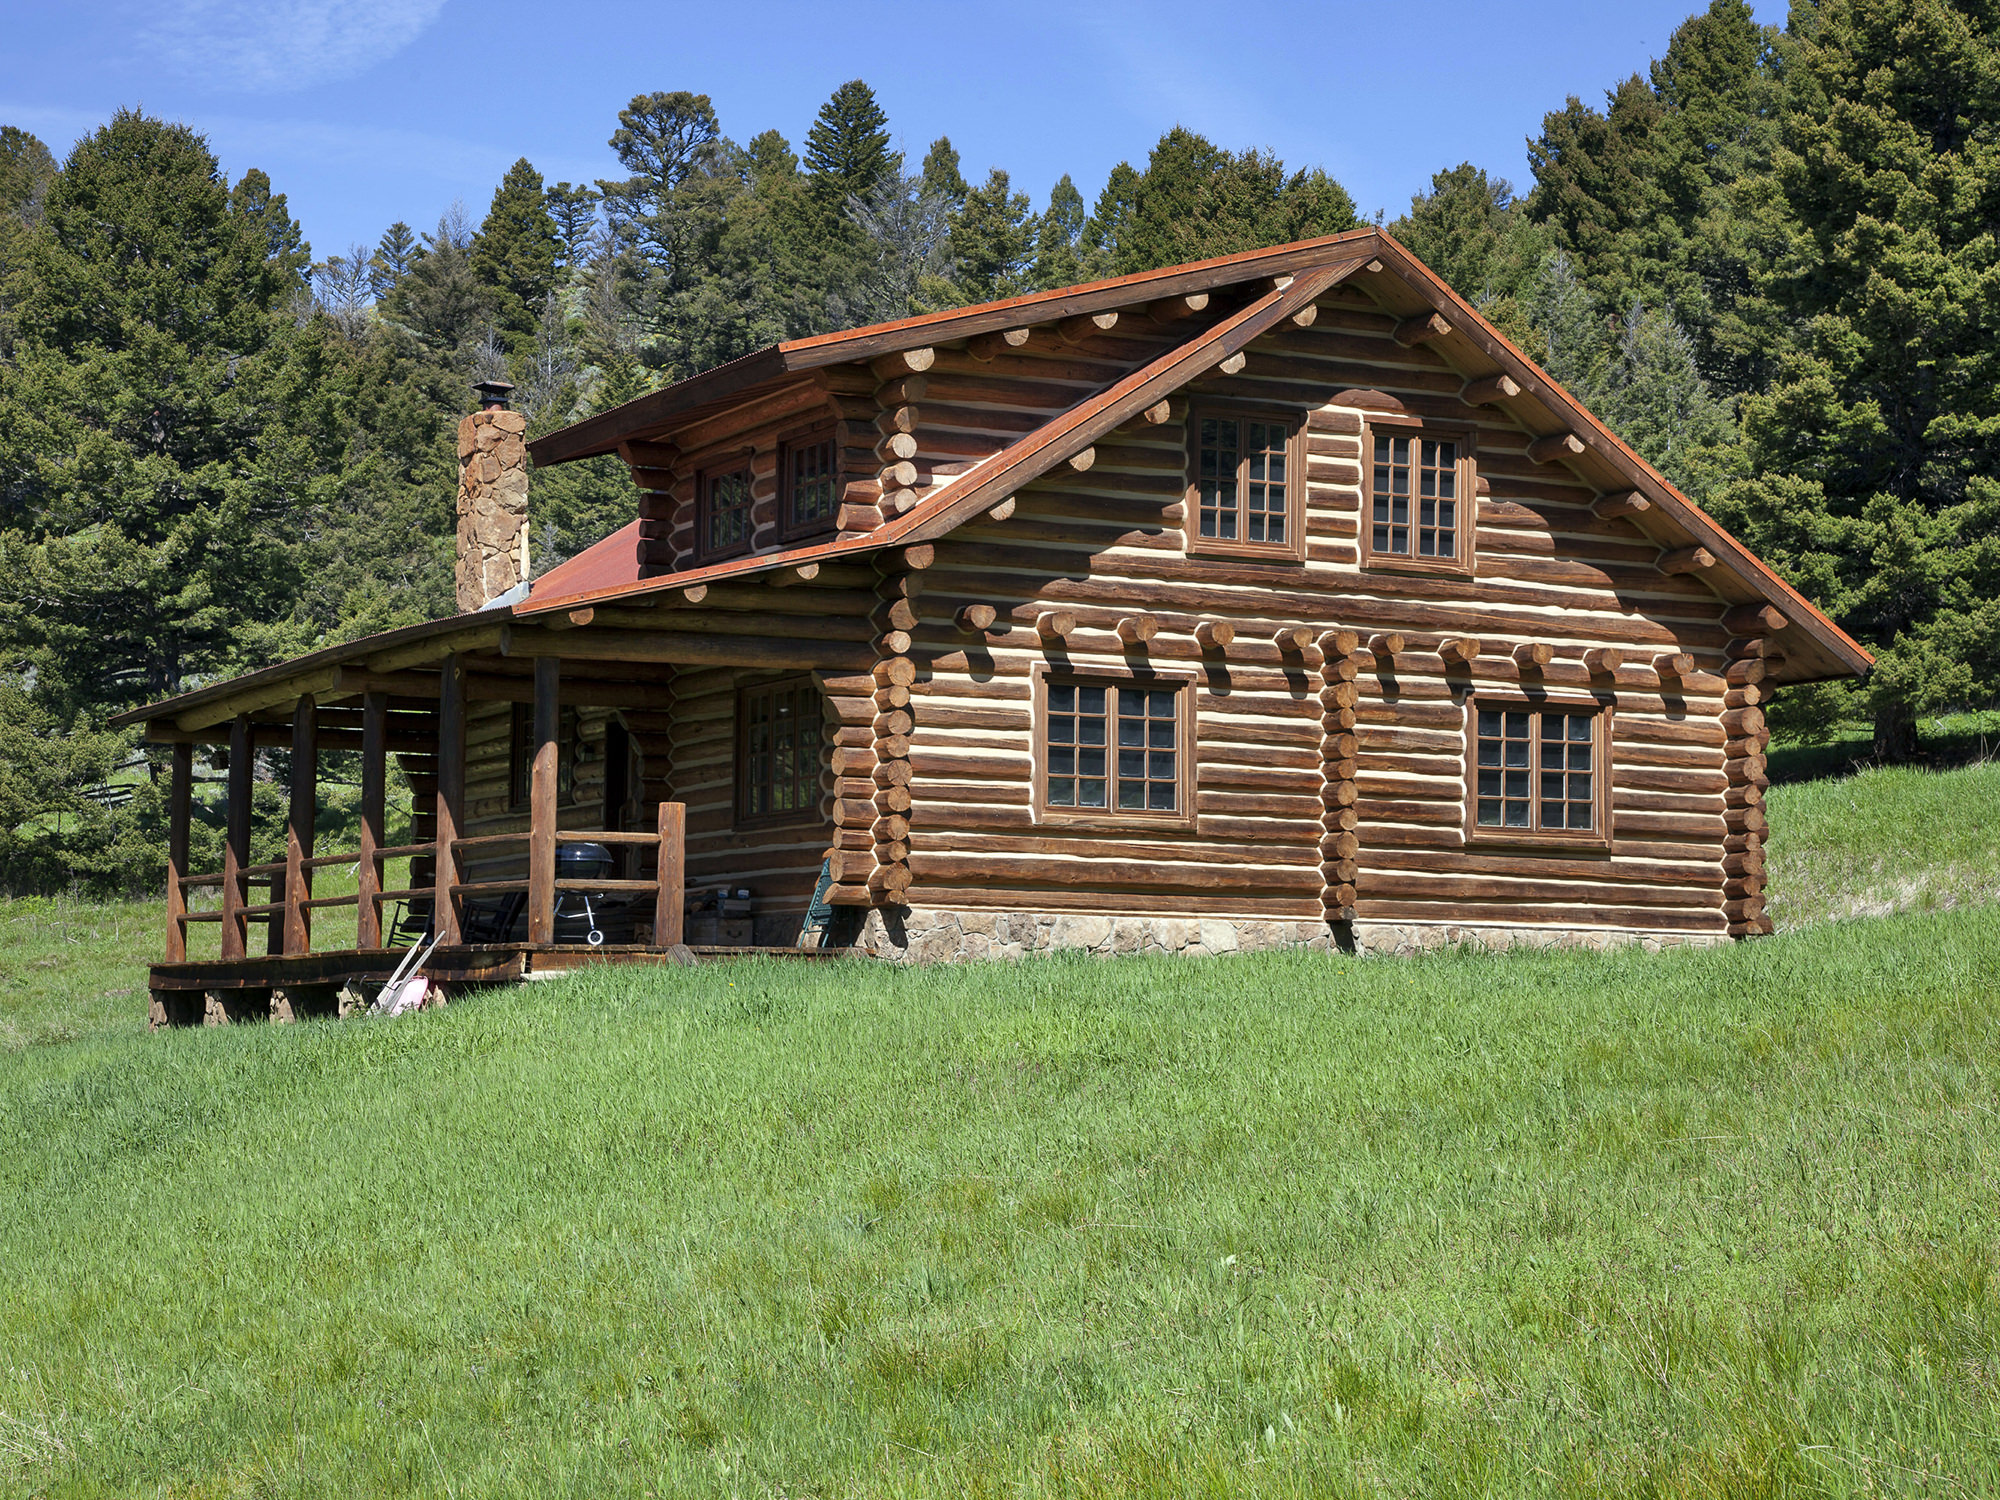 Rustic cabins for sale in montana bozeman log cabins for for Cabin builders montana